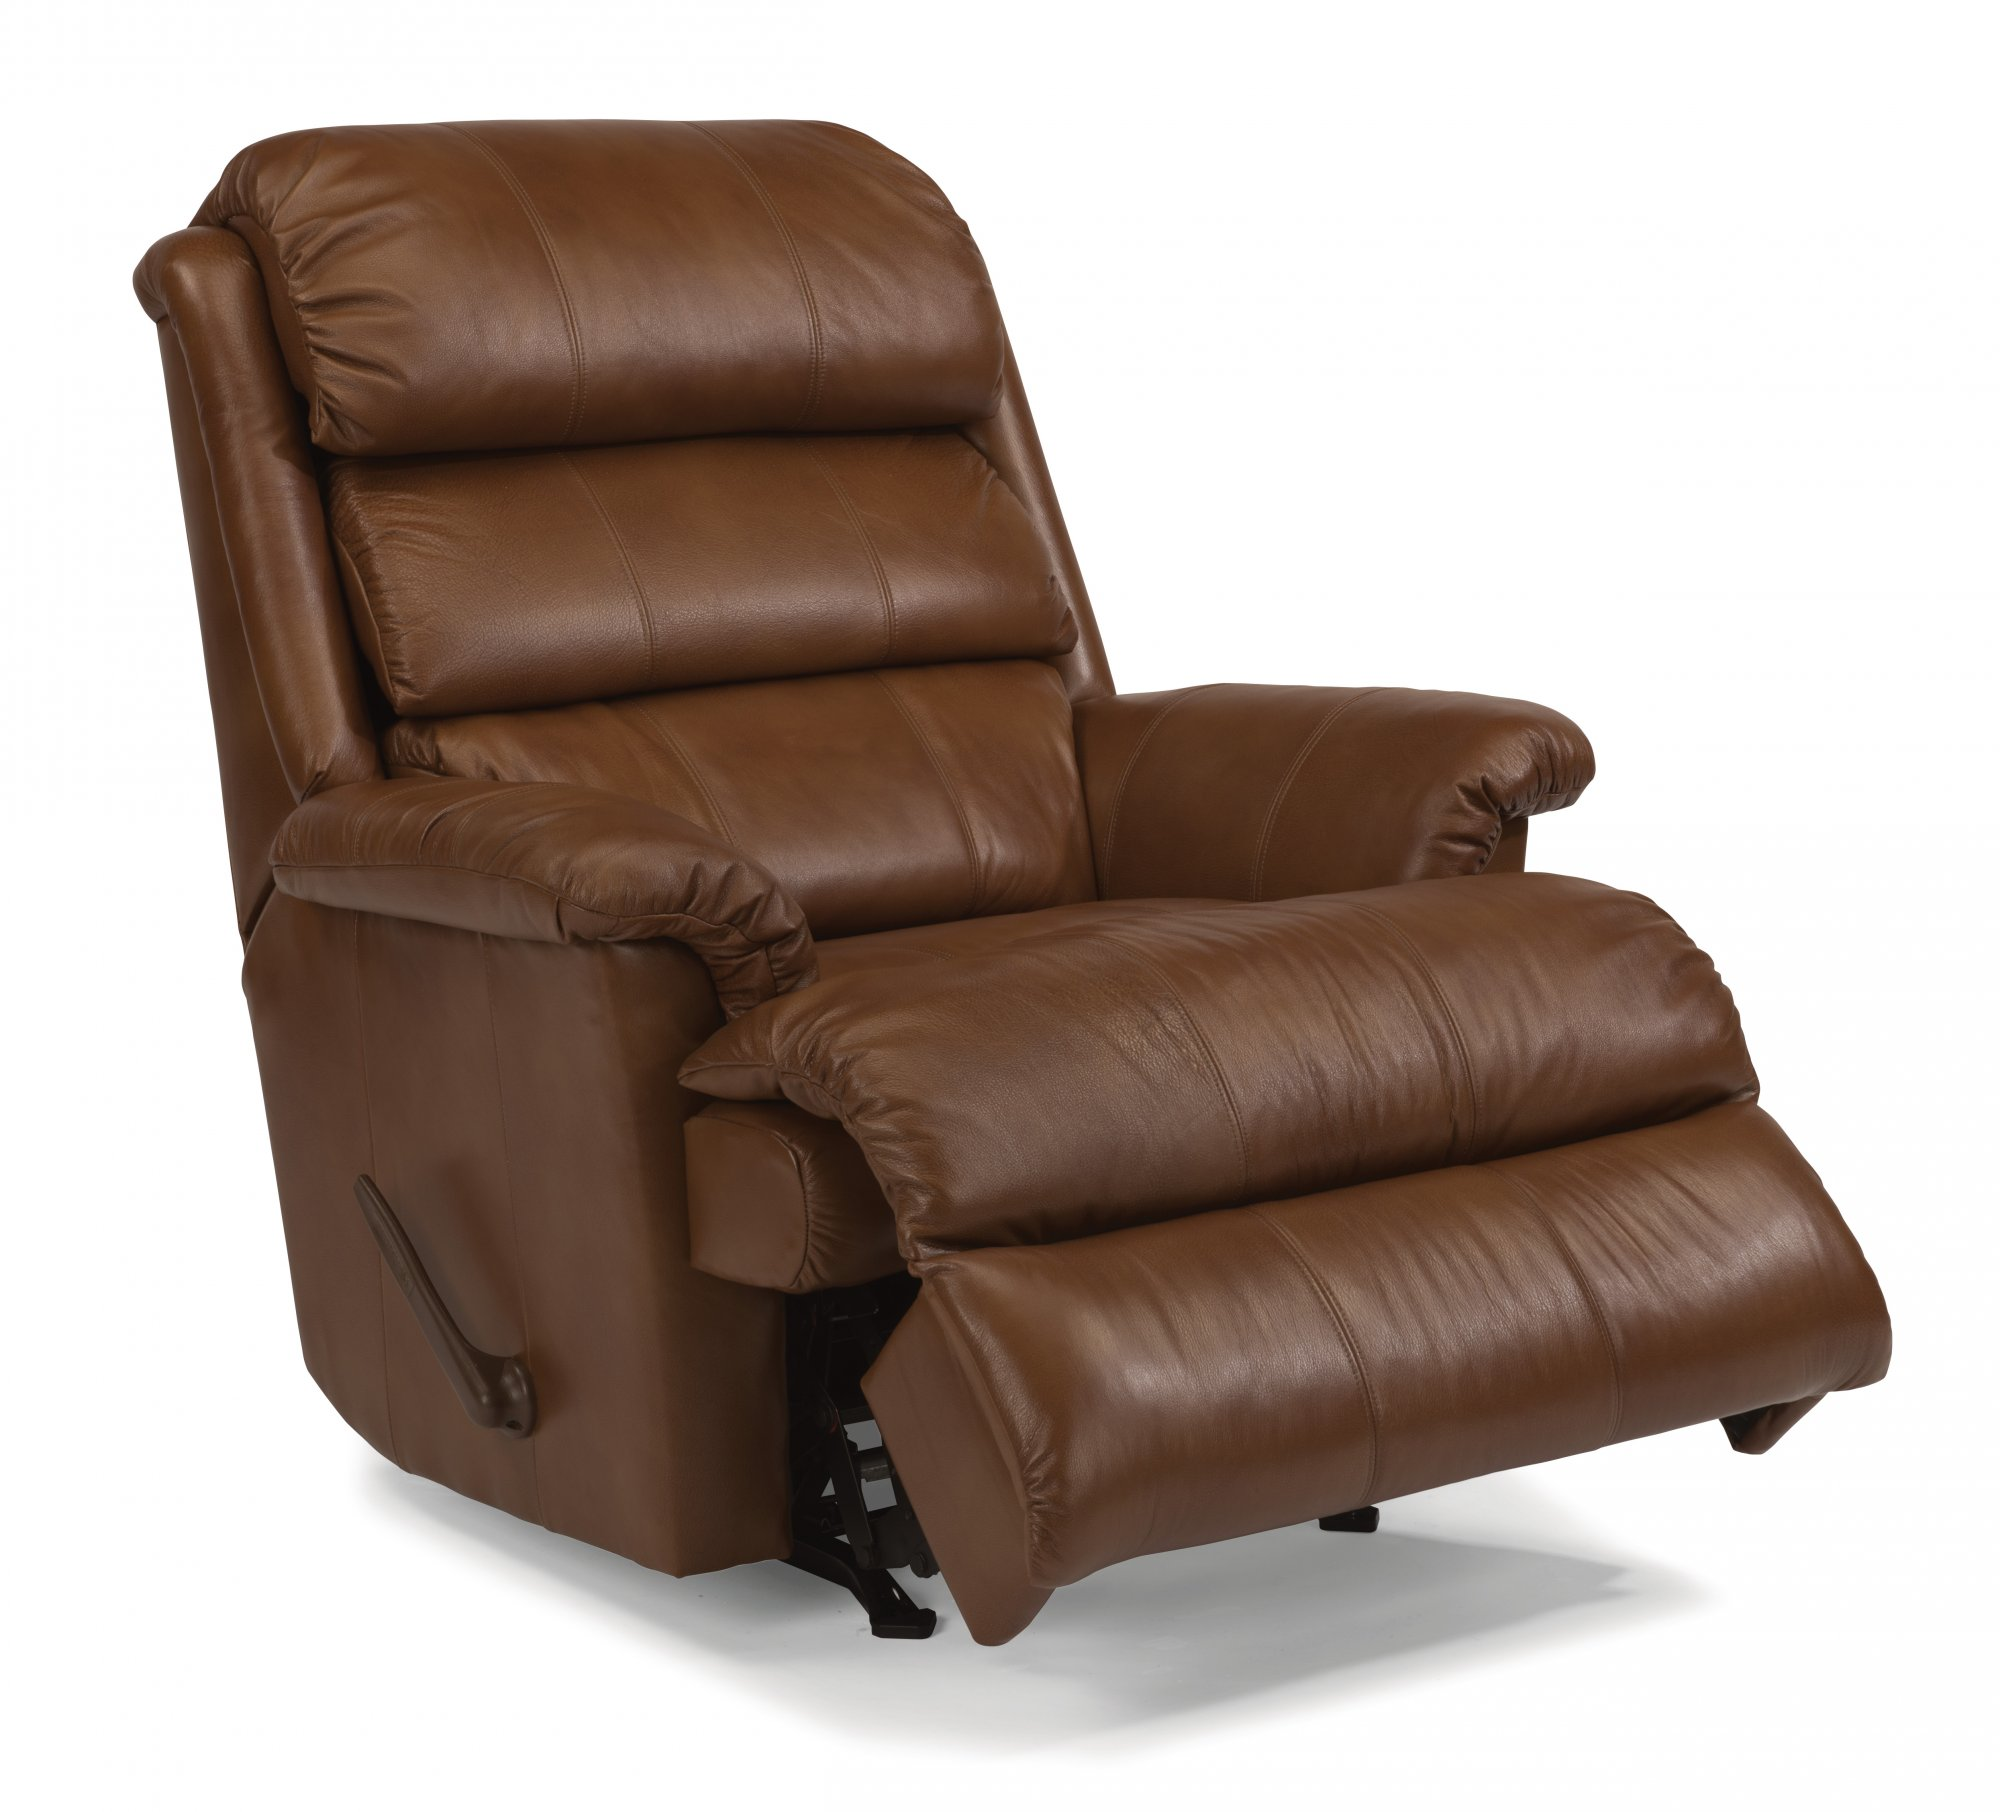 Fabulous Flexsteel 3209 500 Yukon Leather Recliner Highway Ocoug Best Dining Table And Chair Ideas Images Ocougorg